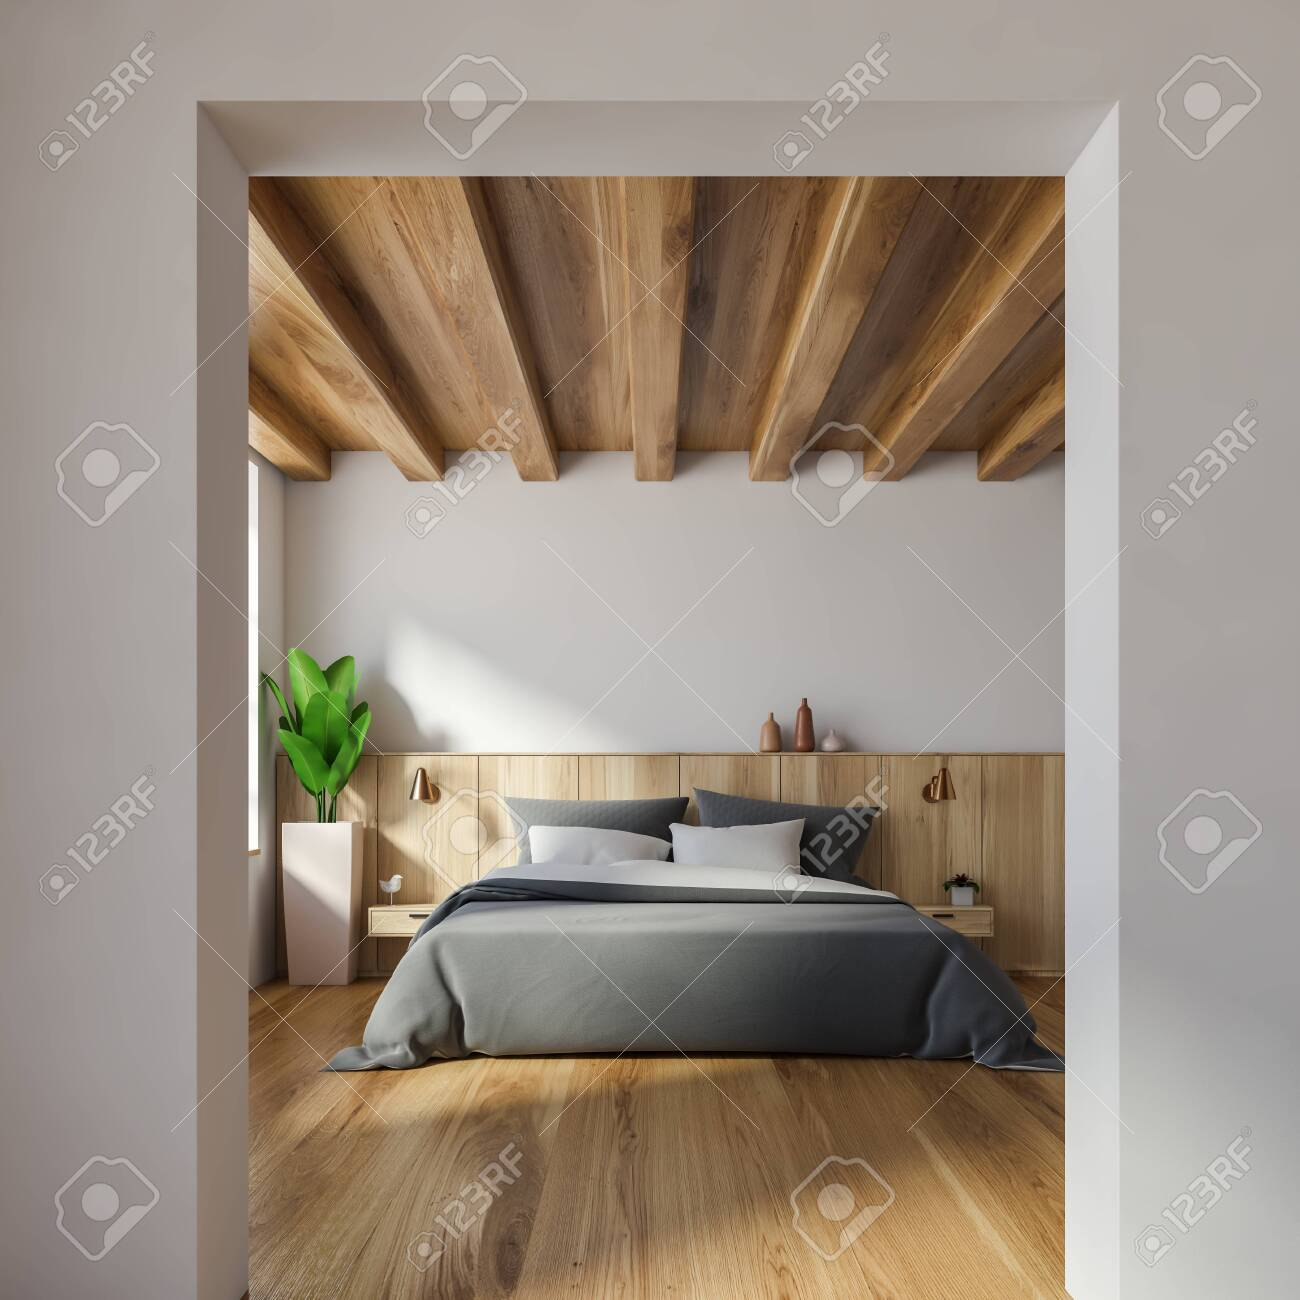 Interior of stylish bedroom with white walls, wooden floor, double..